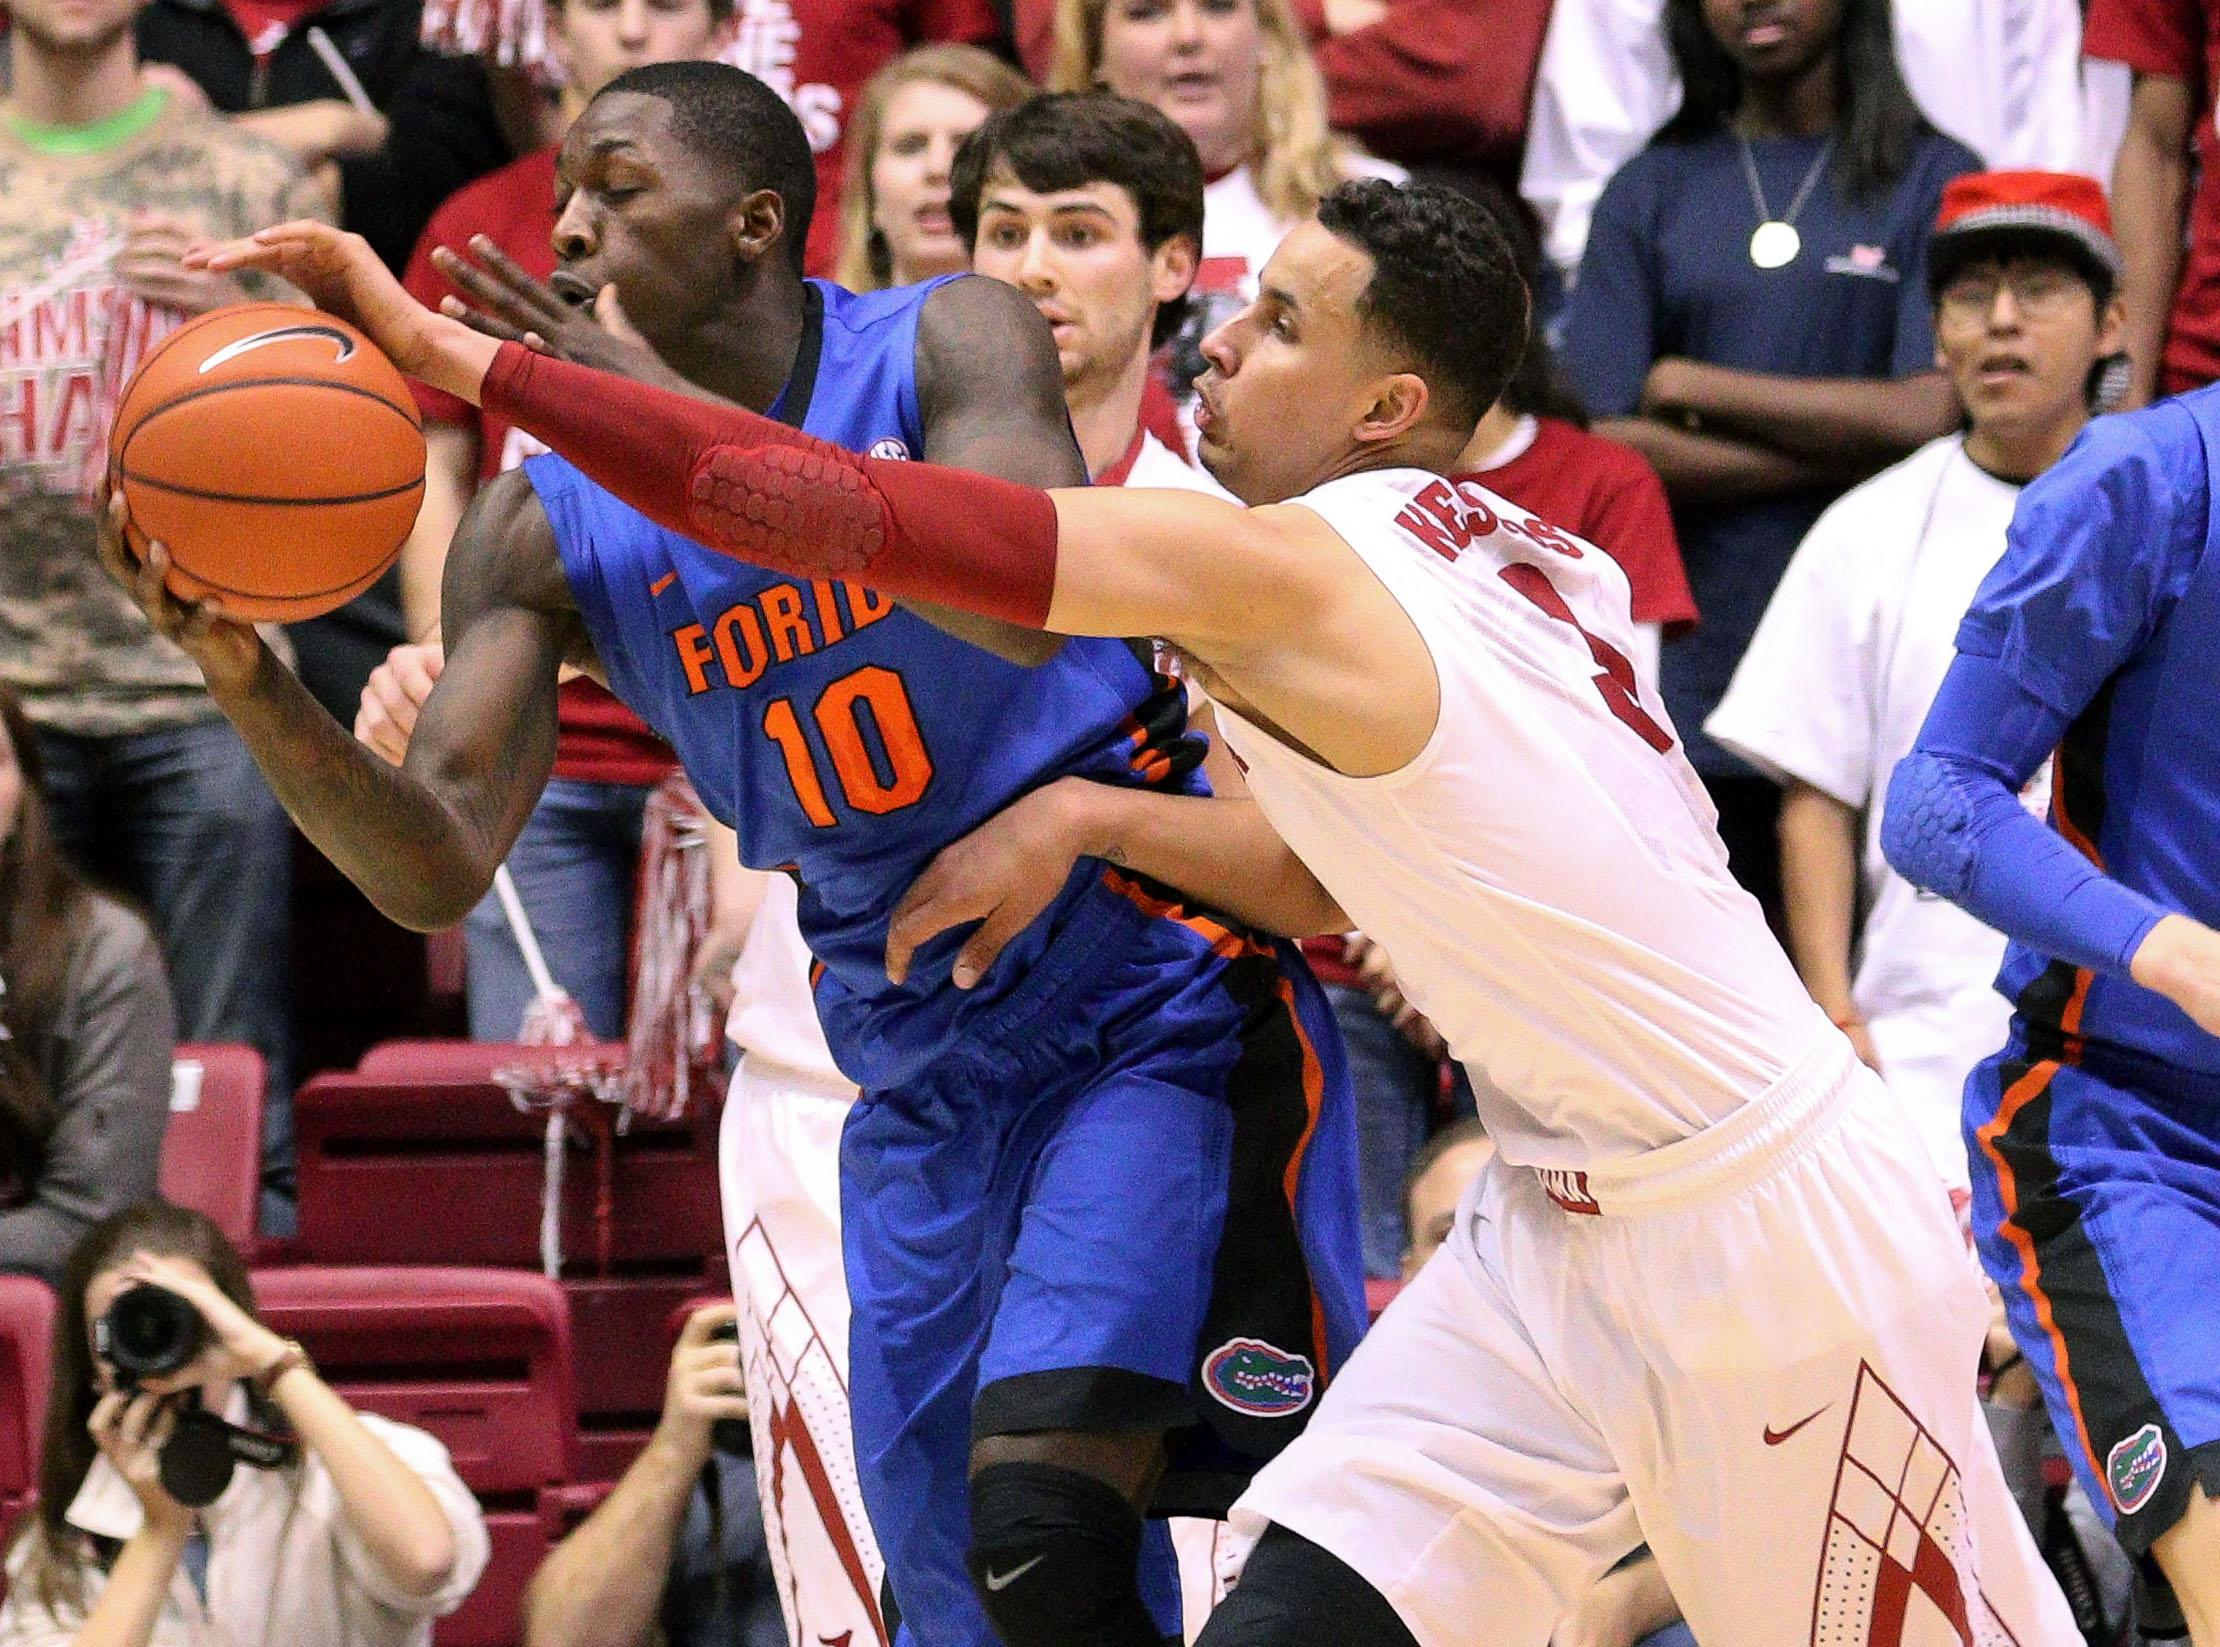 Dorian Finney-Smith saves Florida with go-ahead dunk, clinching block